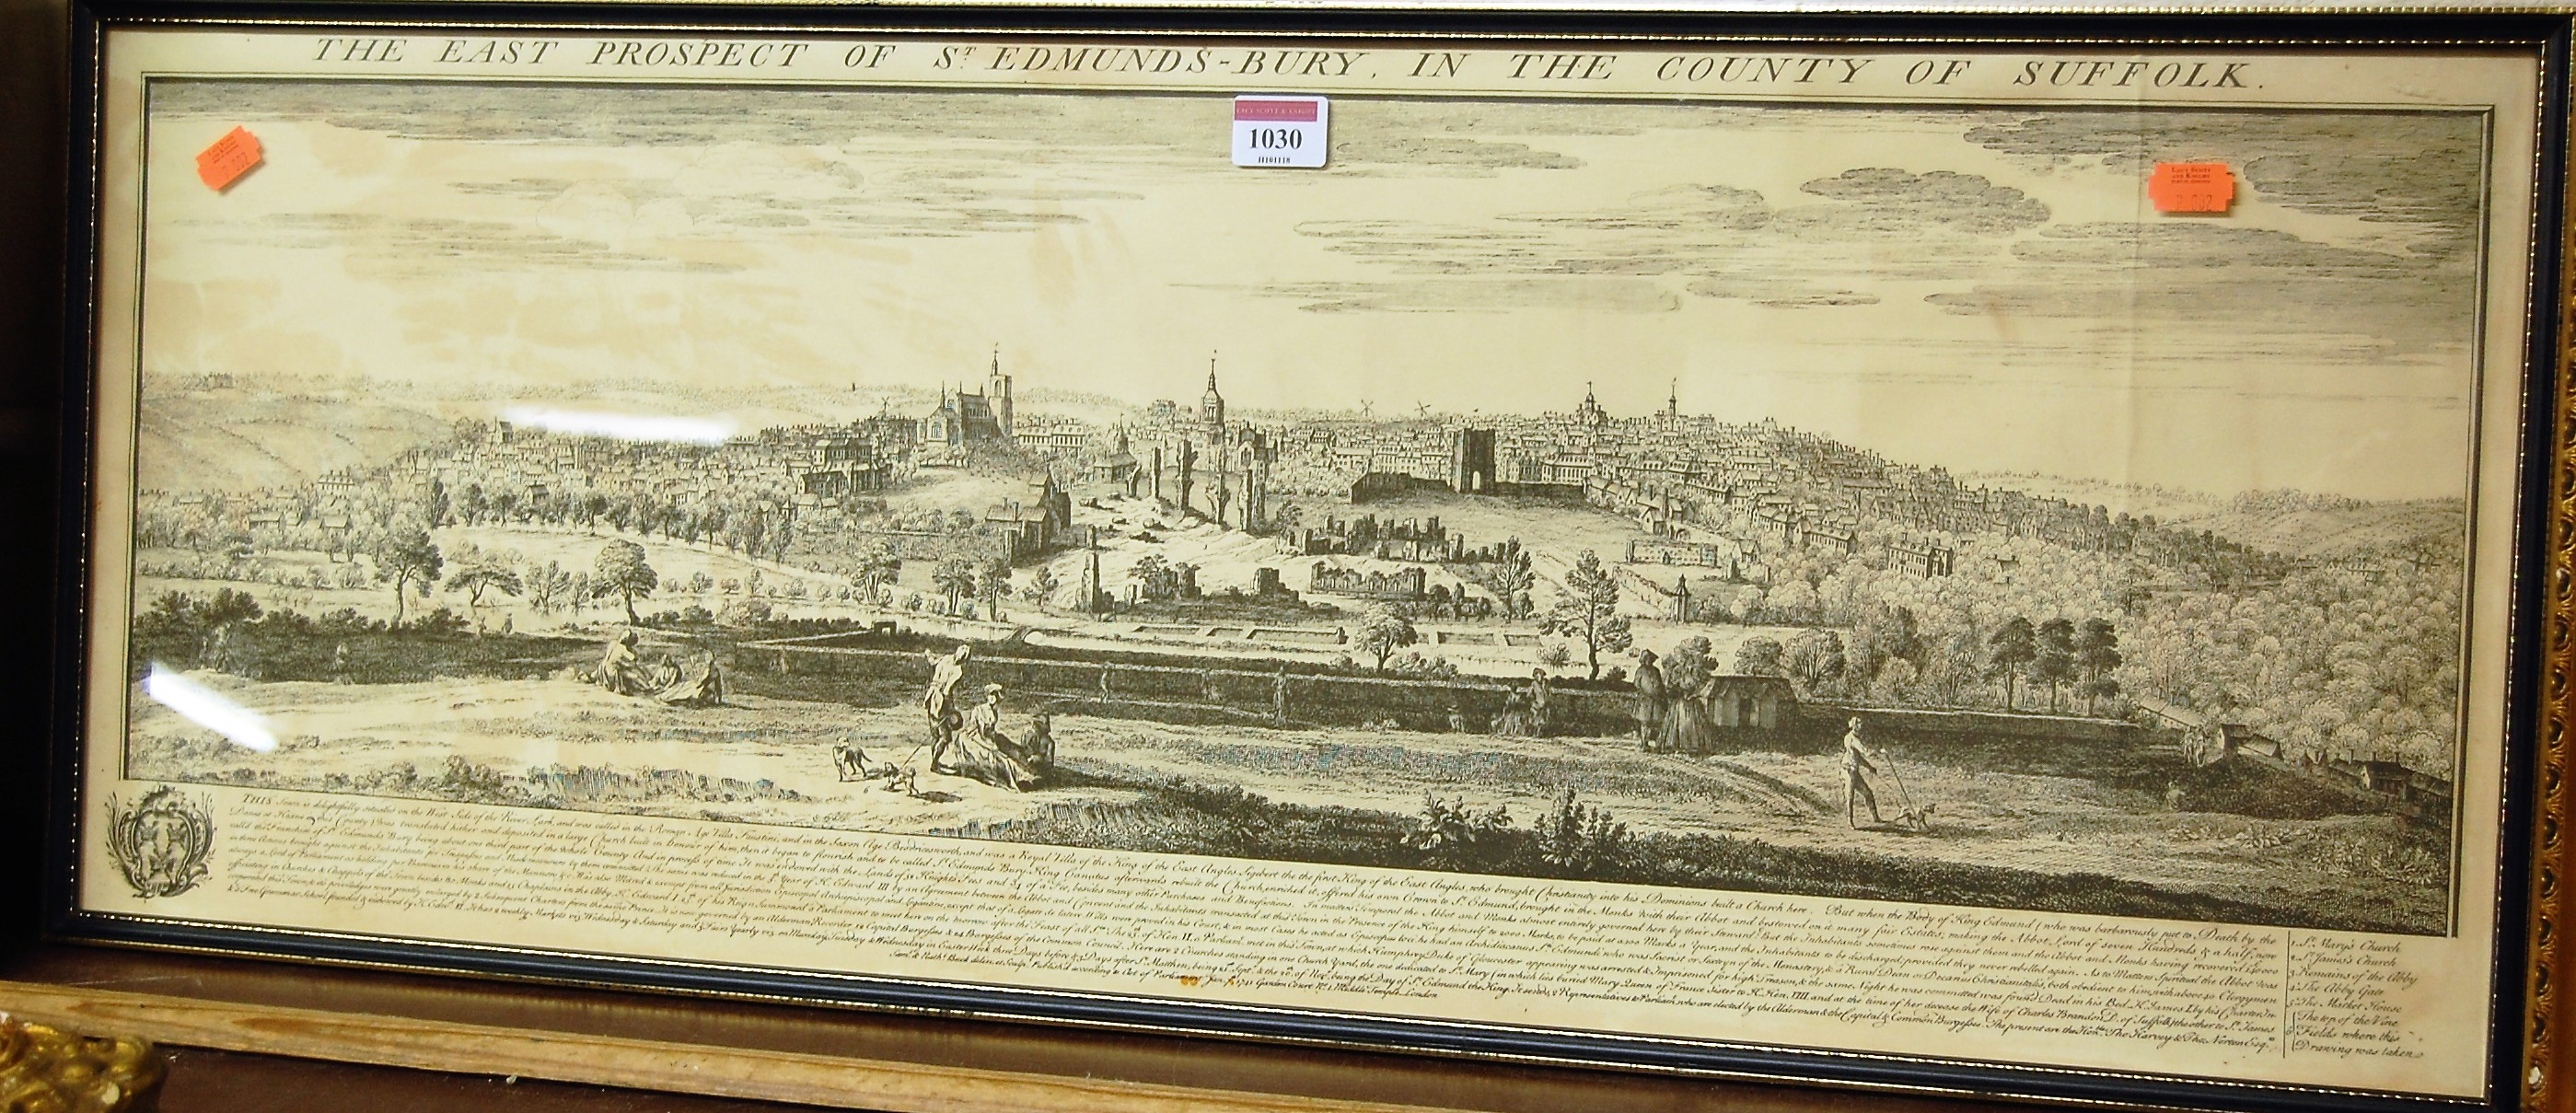 Lot 1030 - The East Prospect of St Edmundsbury in the County of Suffolk, reproduction monochrome engraving